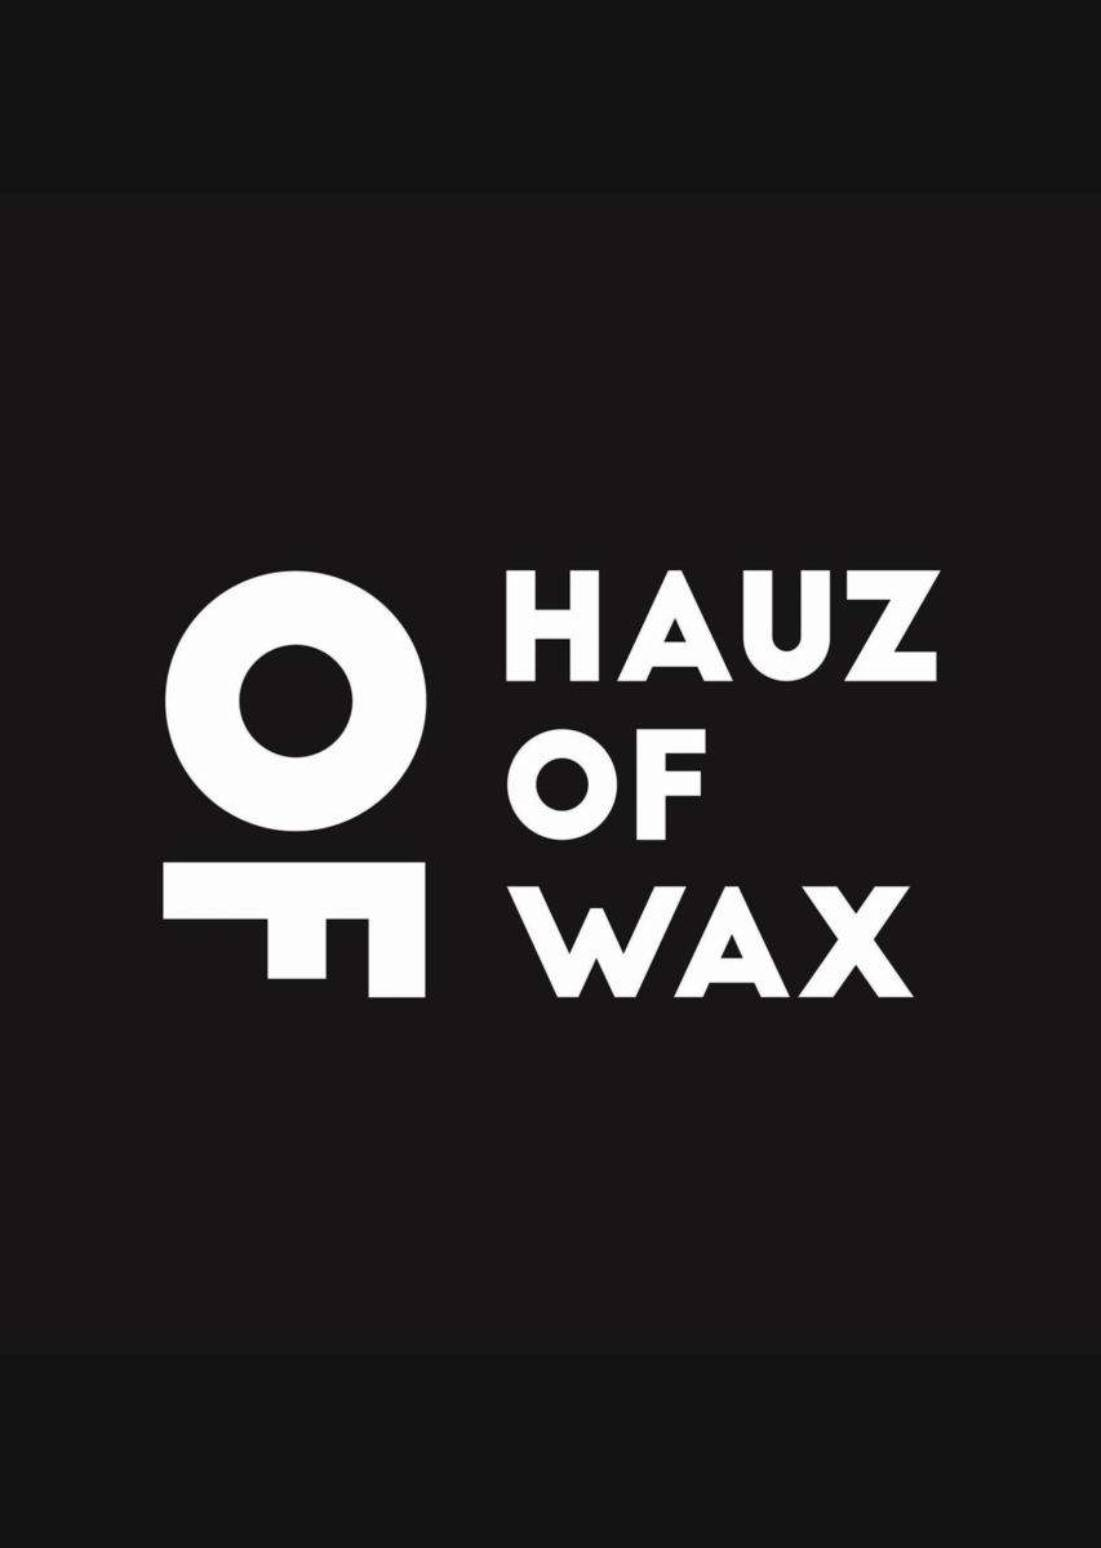 Hauz of Wax | Smederijtuin